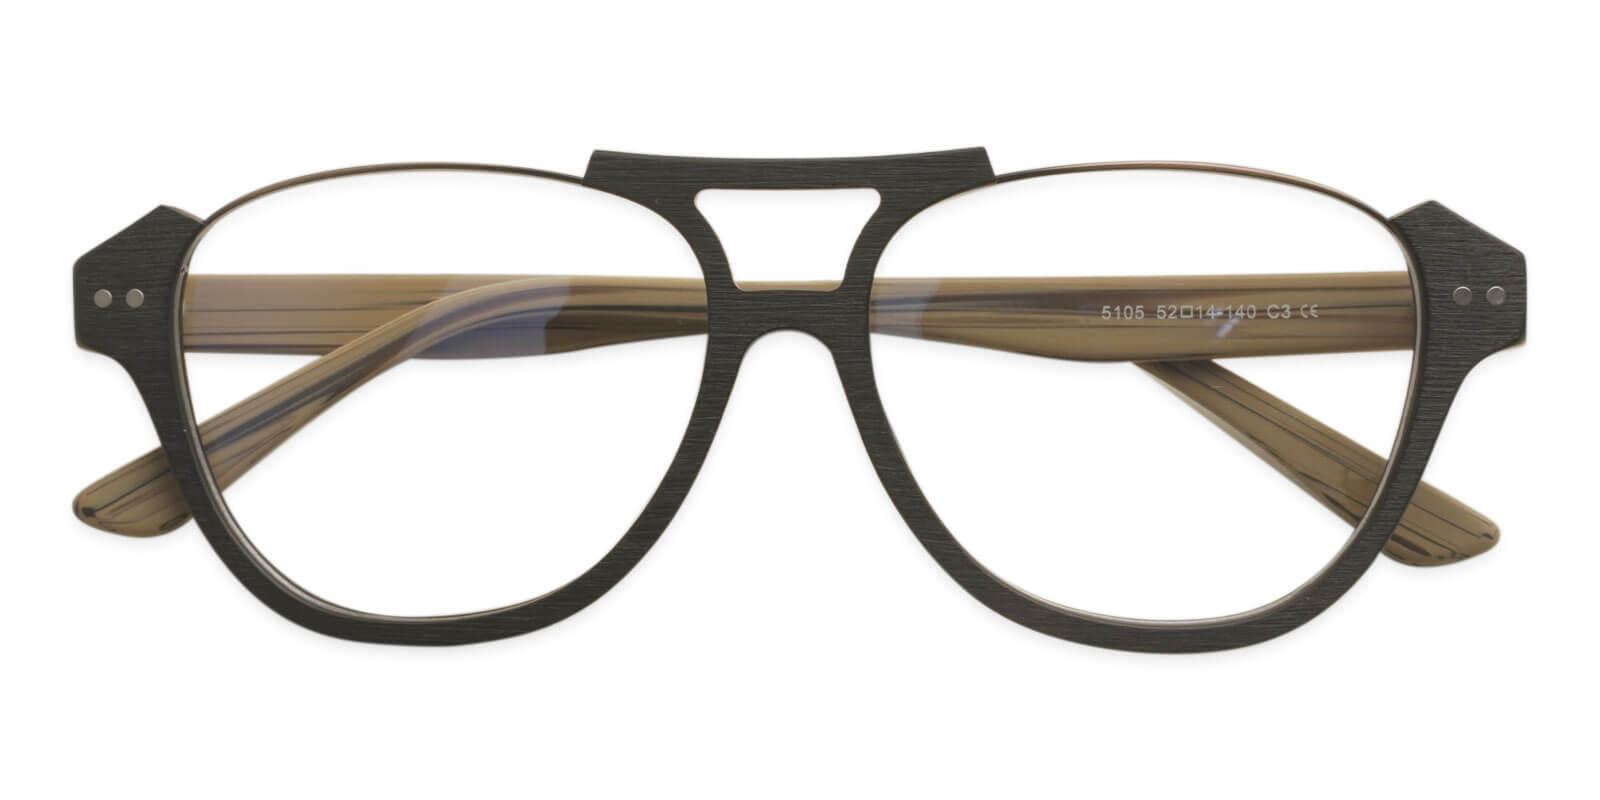 Ocean Gate Cream Combination Eyeglasses , UniversalBridgeFit Frames from ABBE Glasses